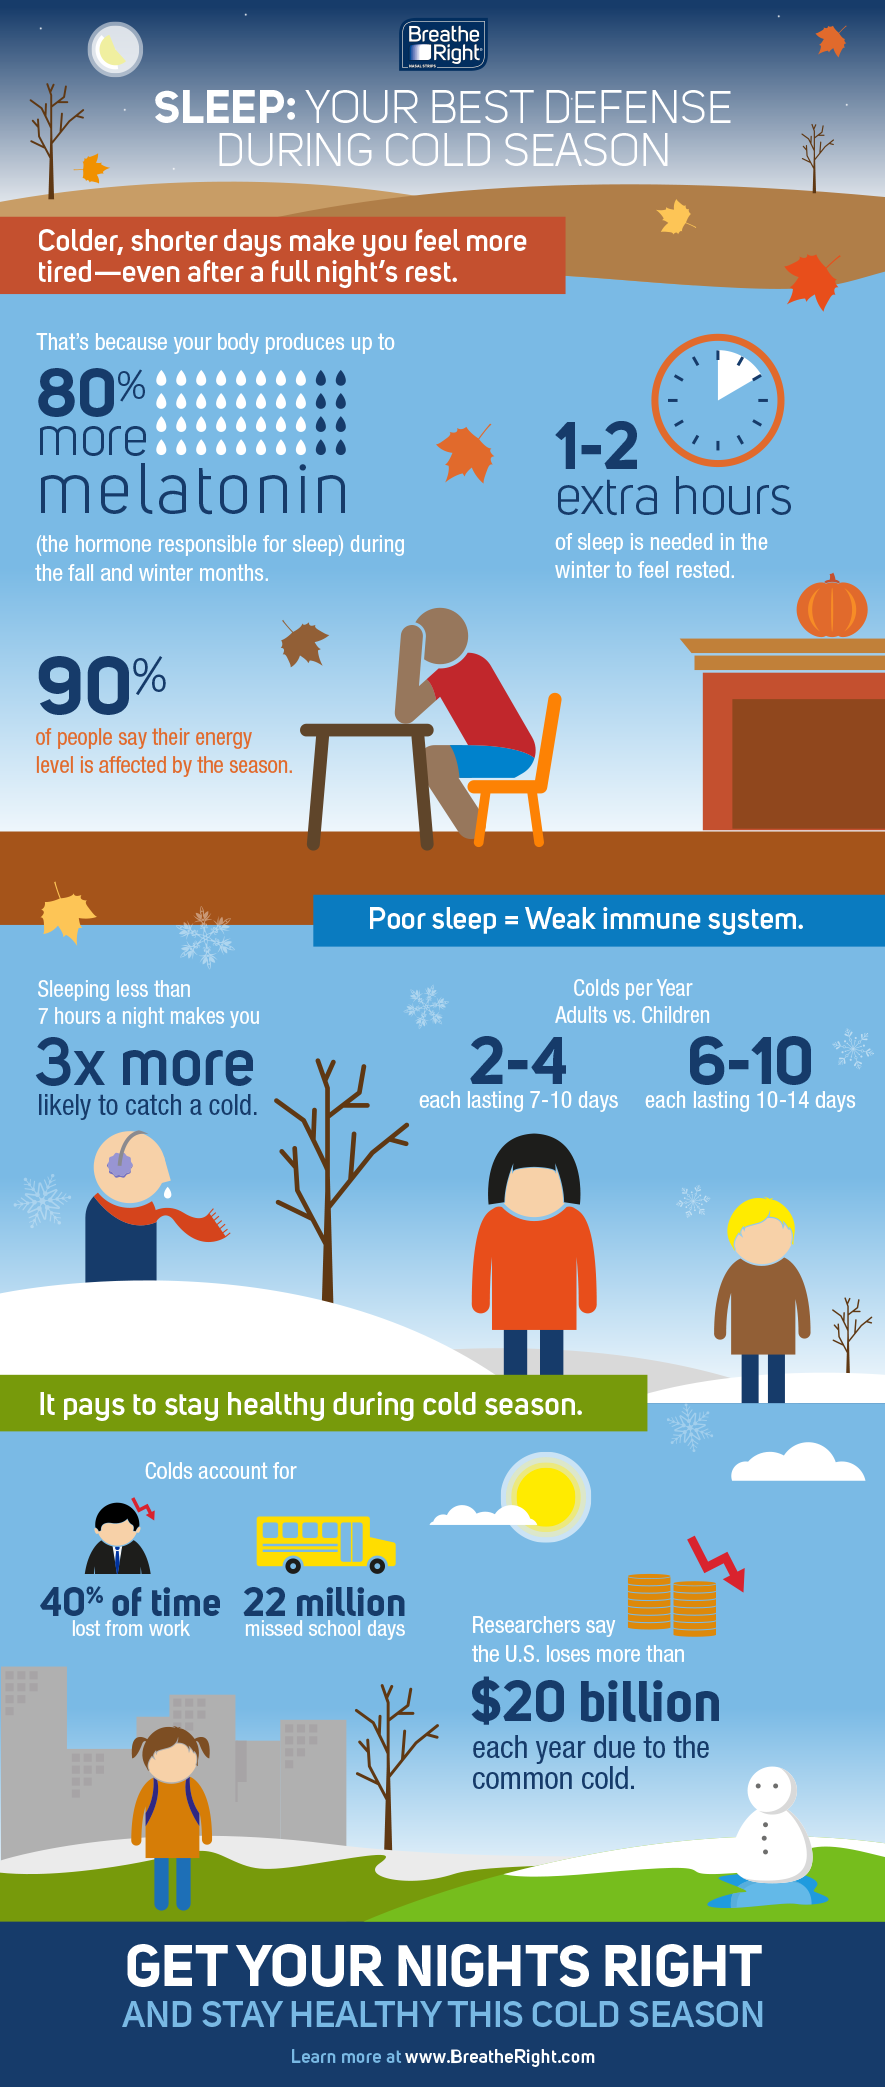 read more : https://www.breatheright.com/sleep-better-tips/sleep/cold-season.html